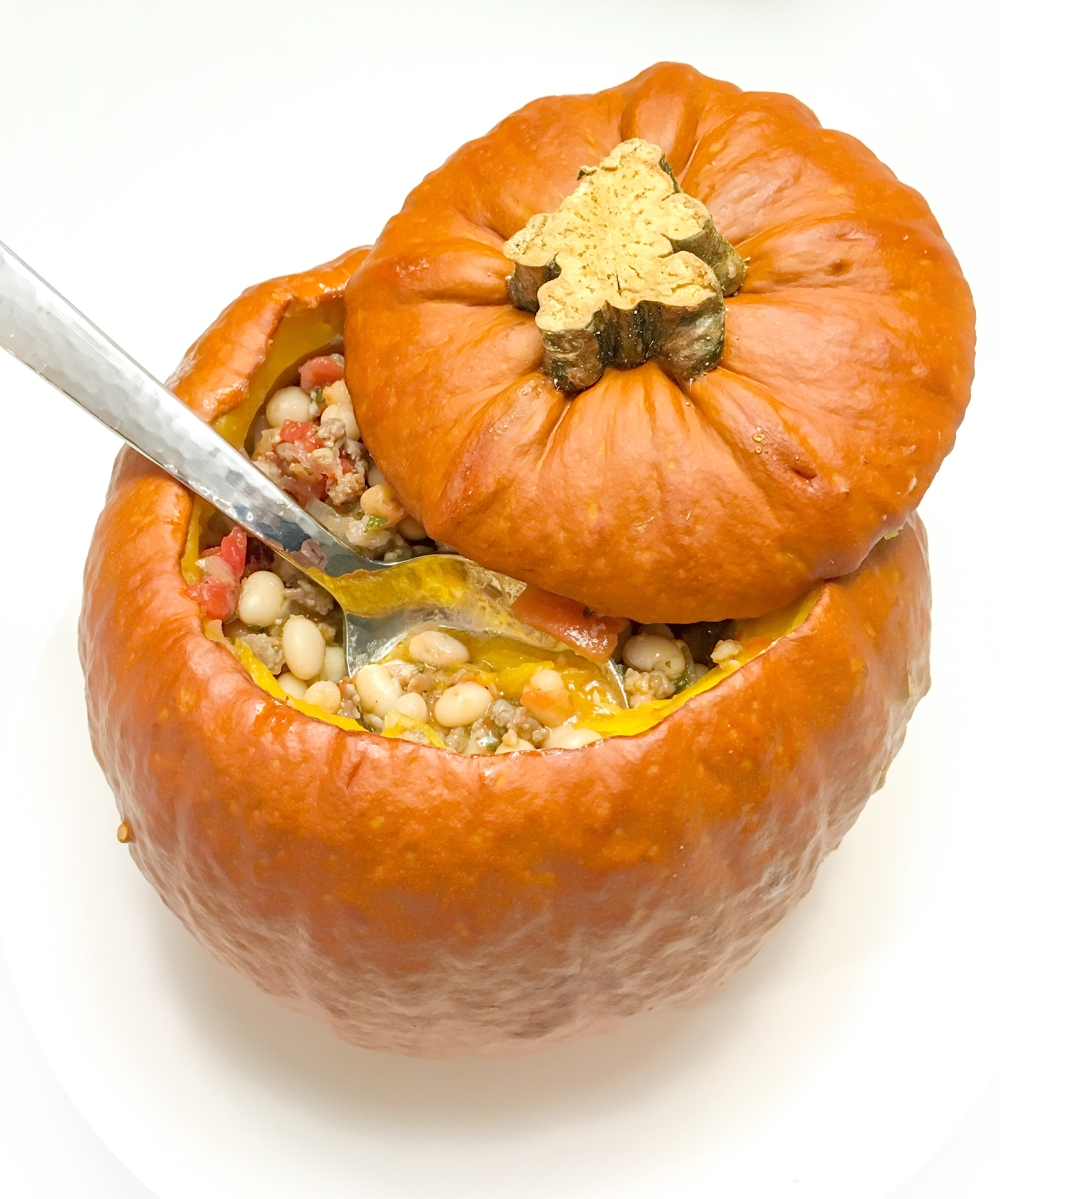 Pumpkin Stew baked IN the Pumpkin!